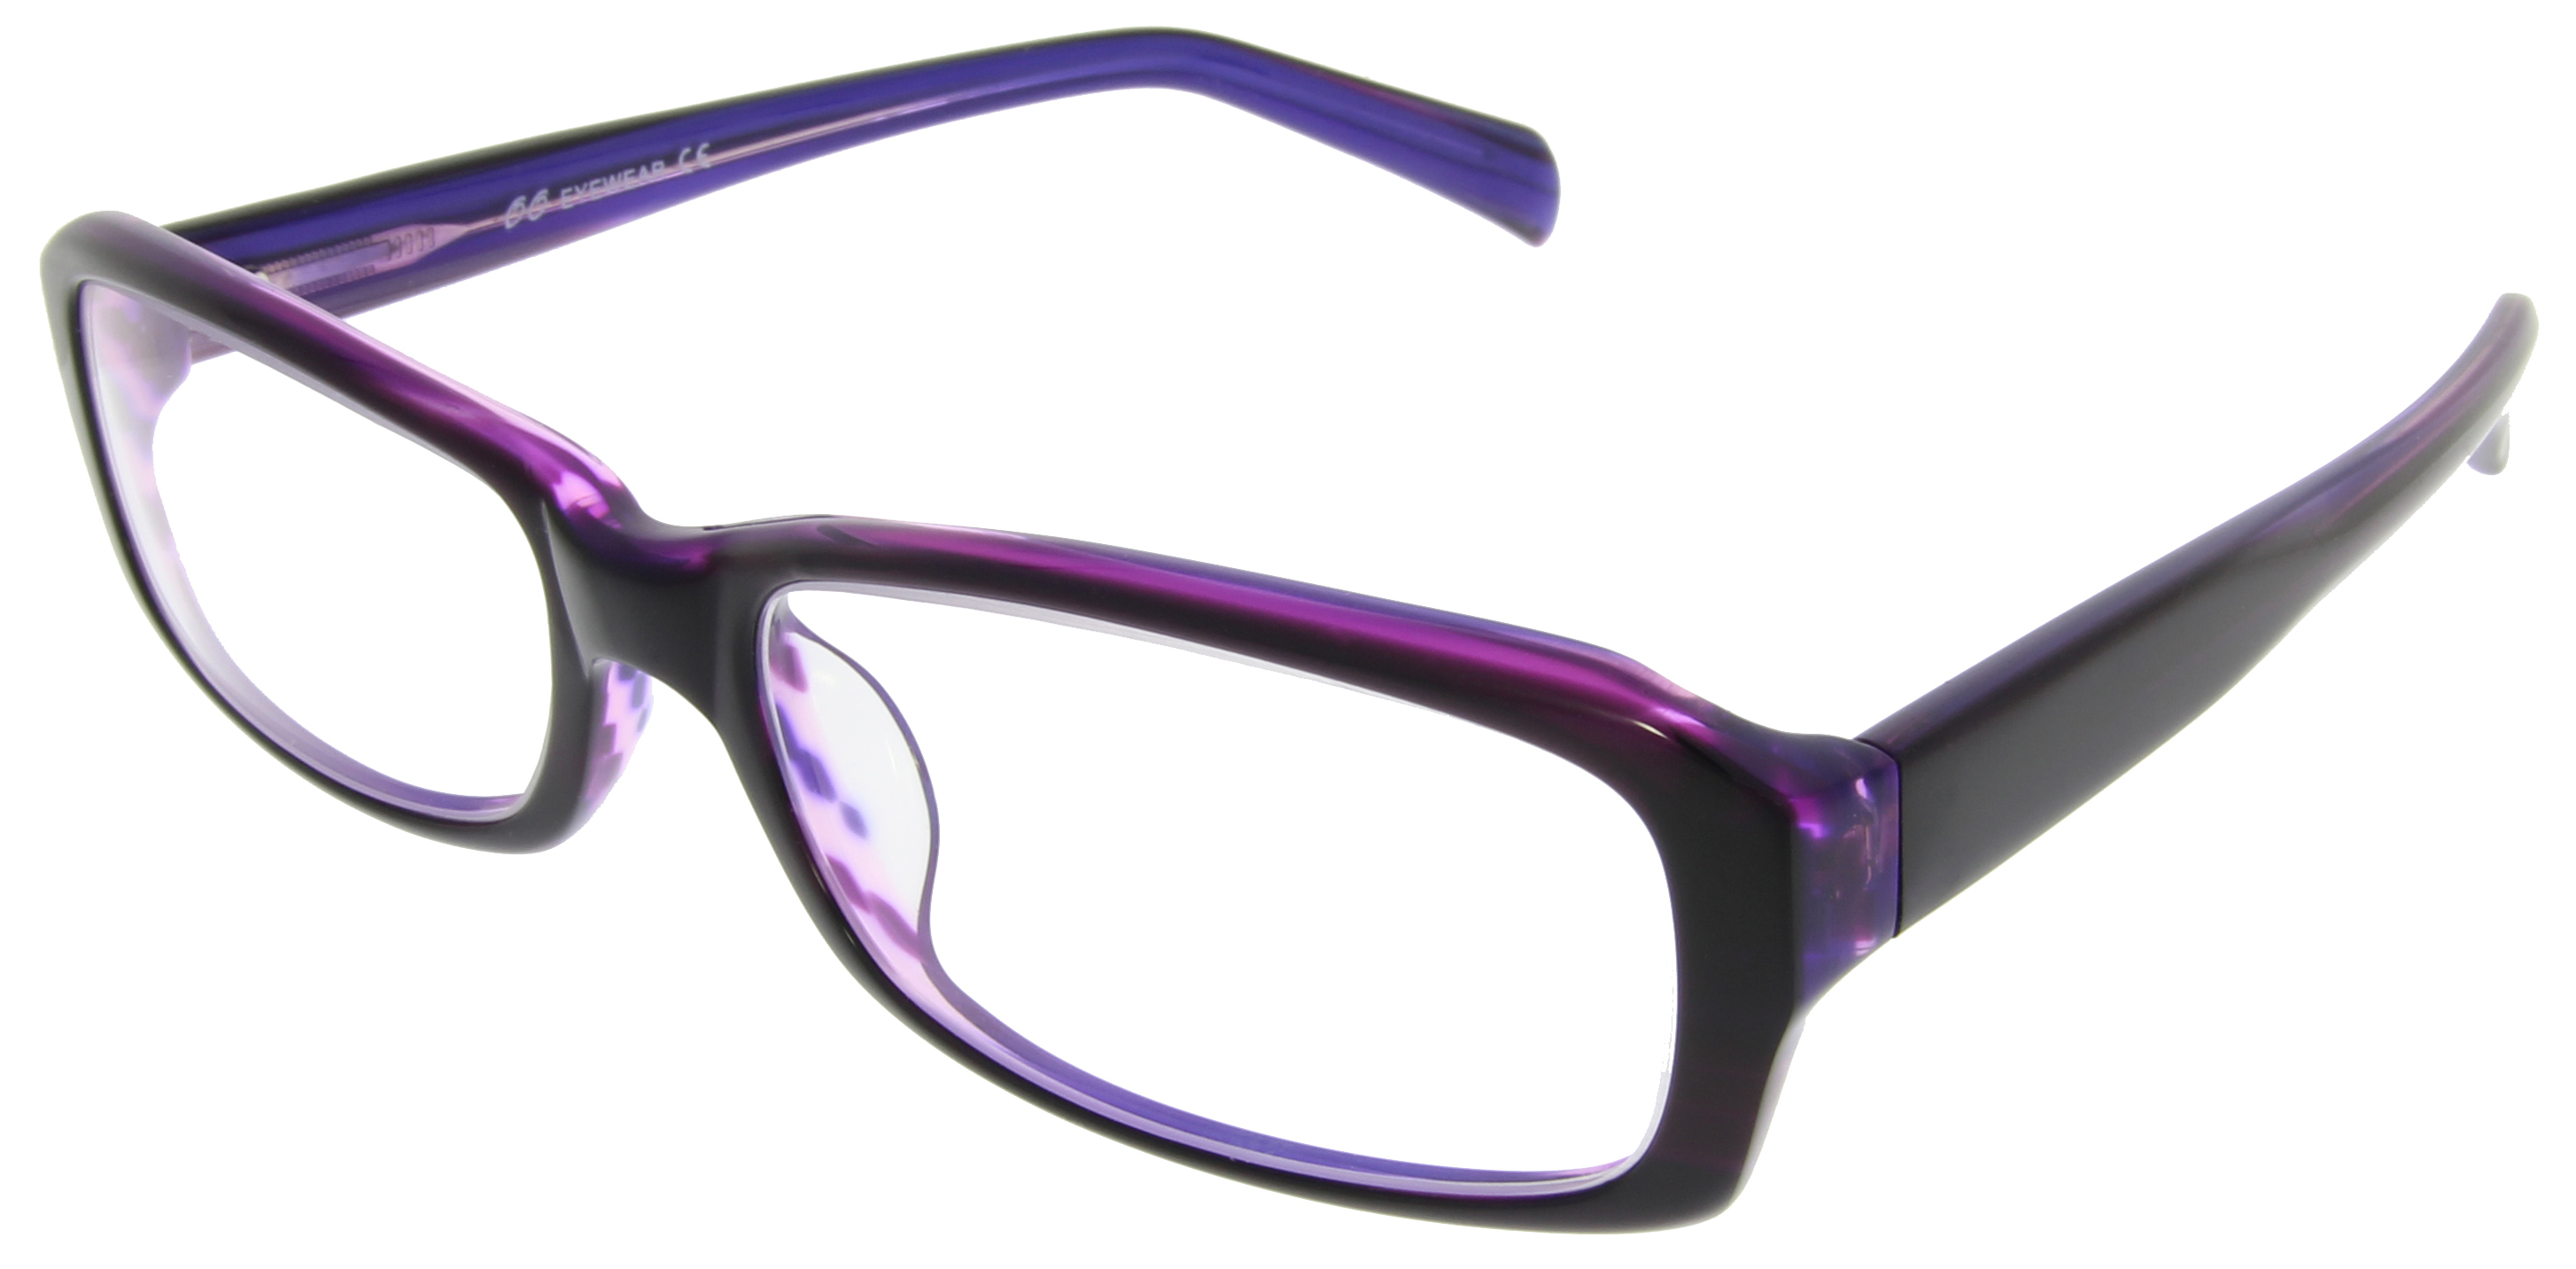 Trendy Damen Fashion Brille in Dunkel-Lila